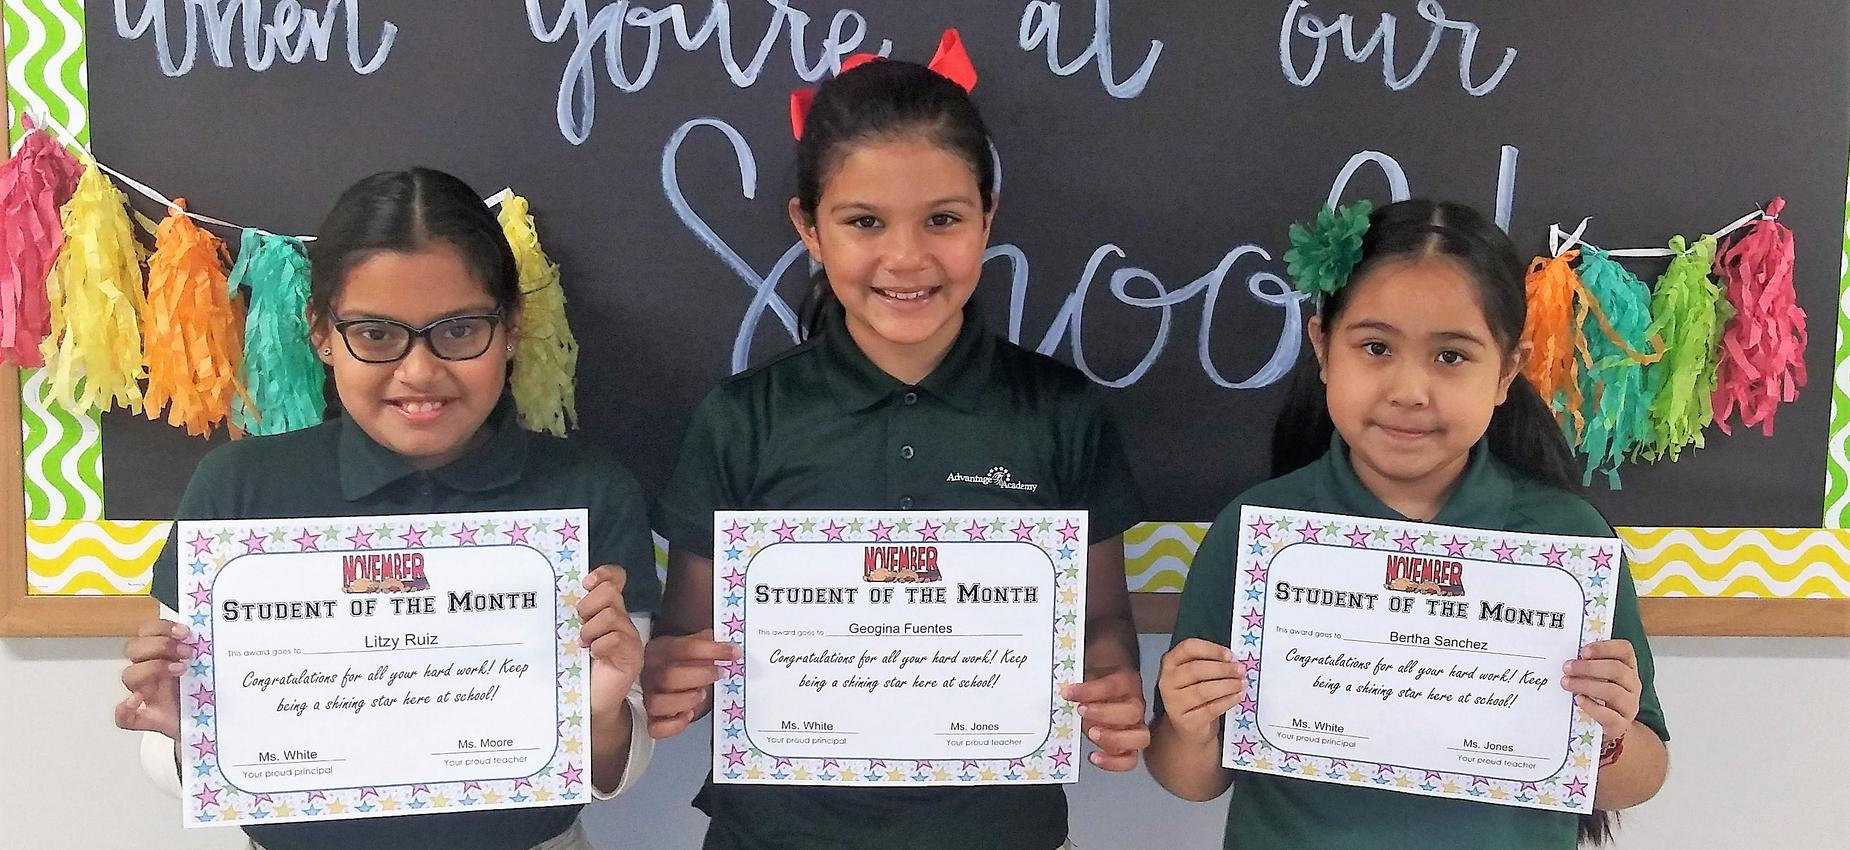 3 girls holding certificate awards in school uniform